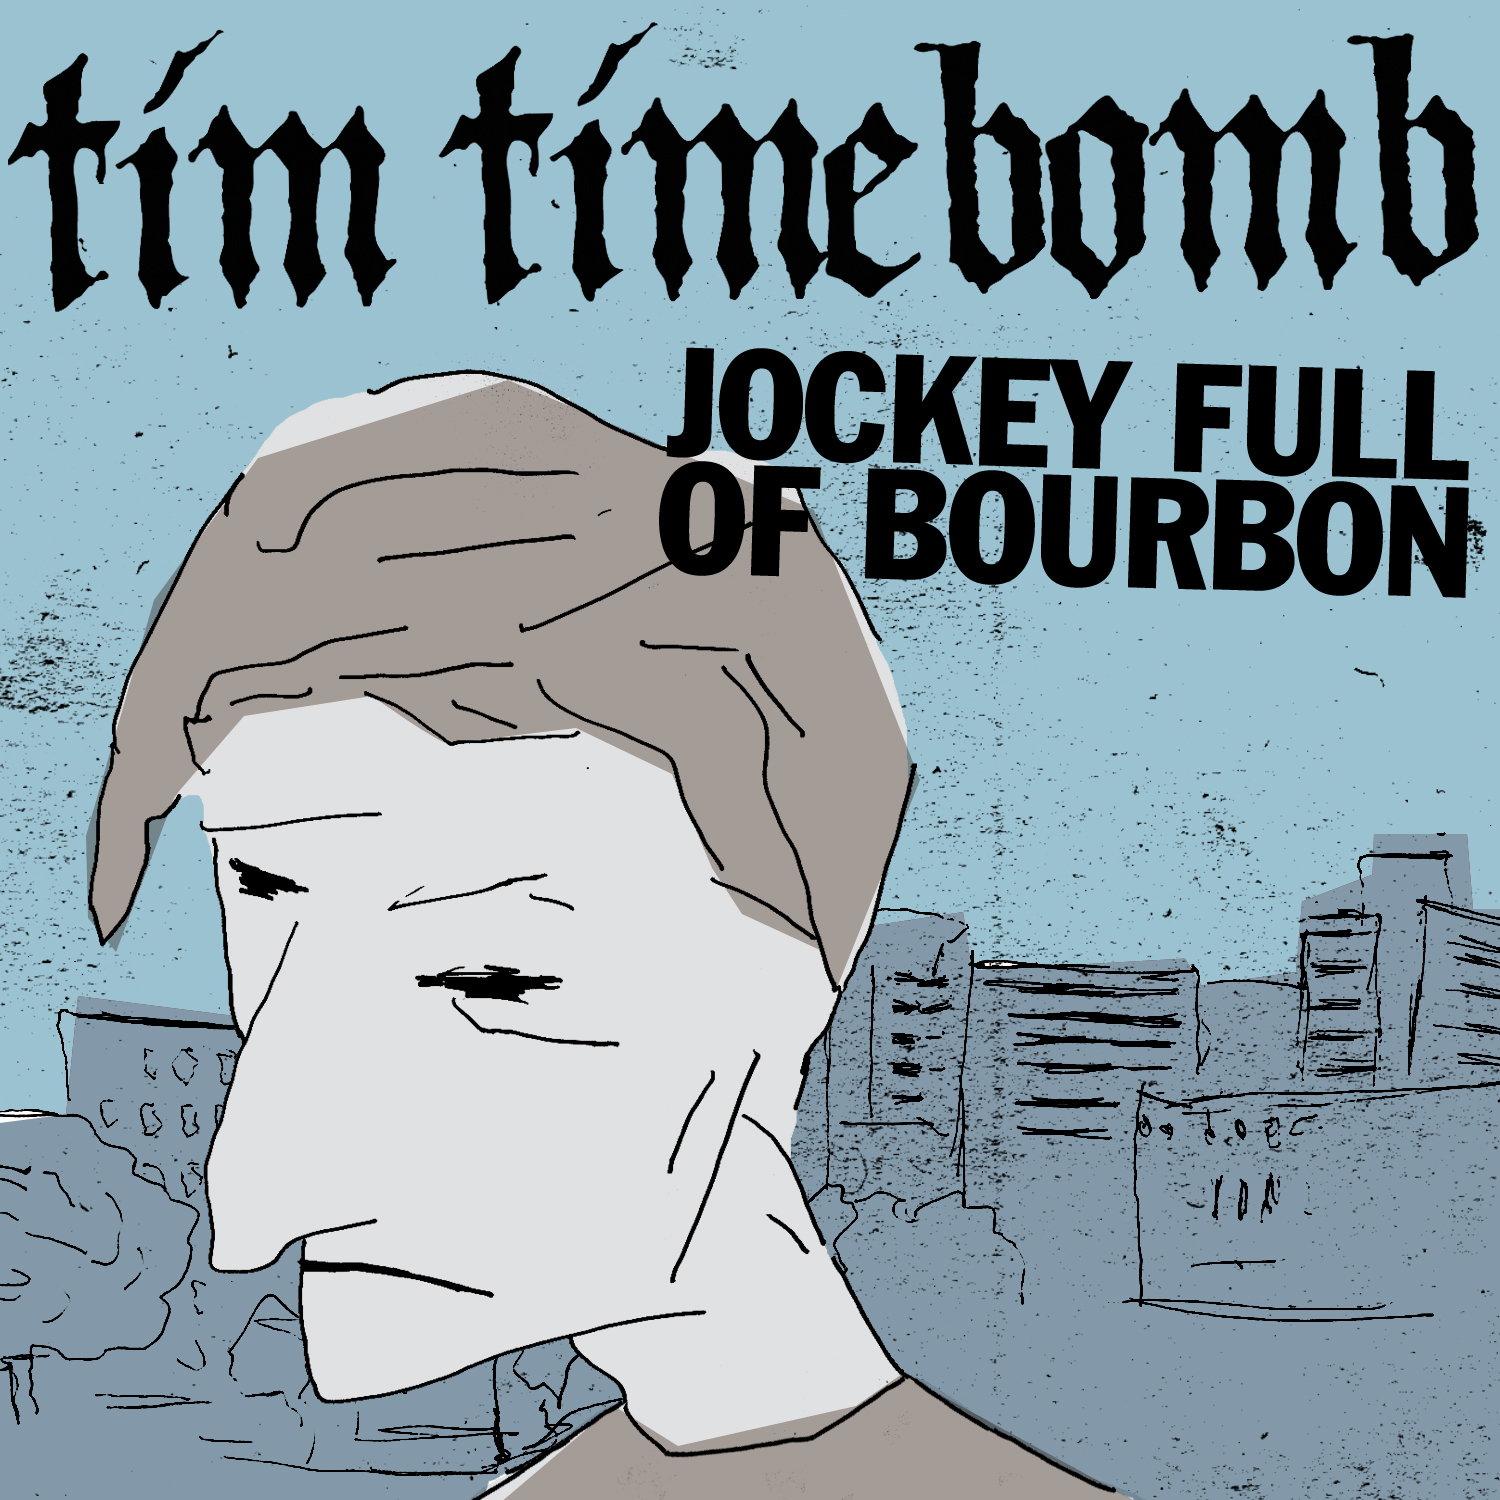 ___JOCKEY FULL OF BOURBON